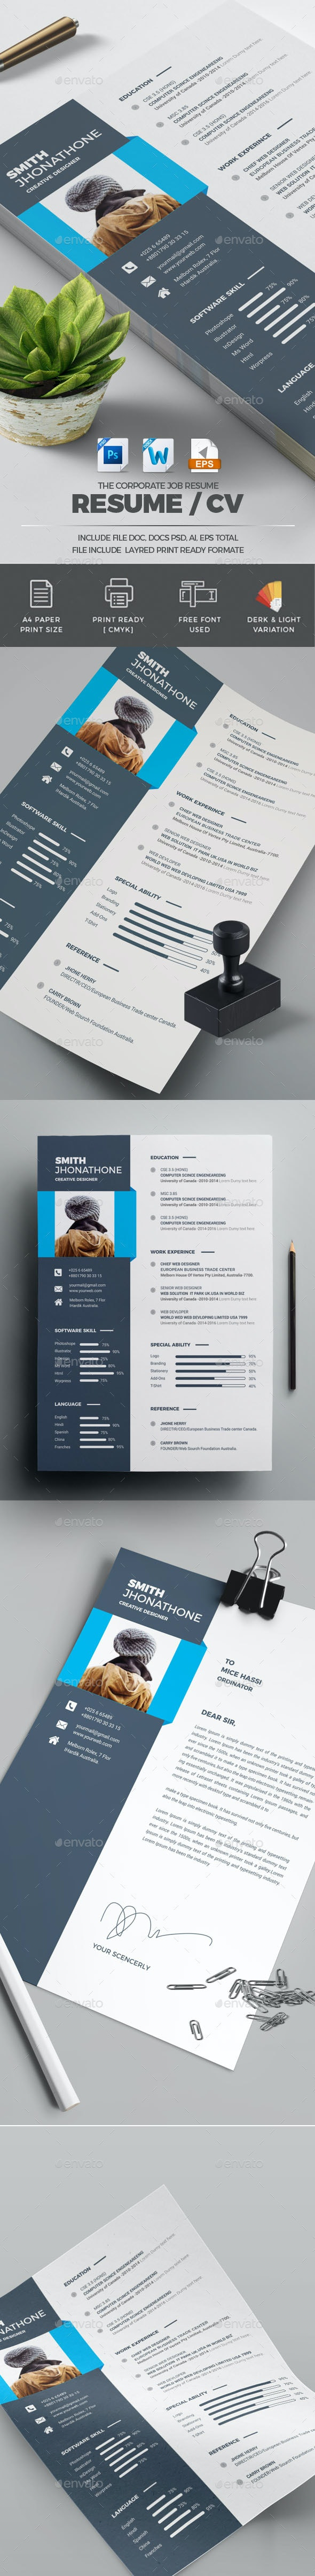 Ms Word Resume Template - Resumes Stationery